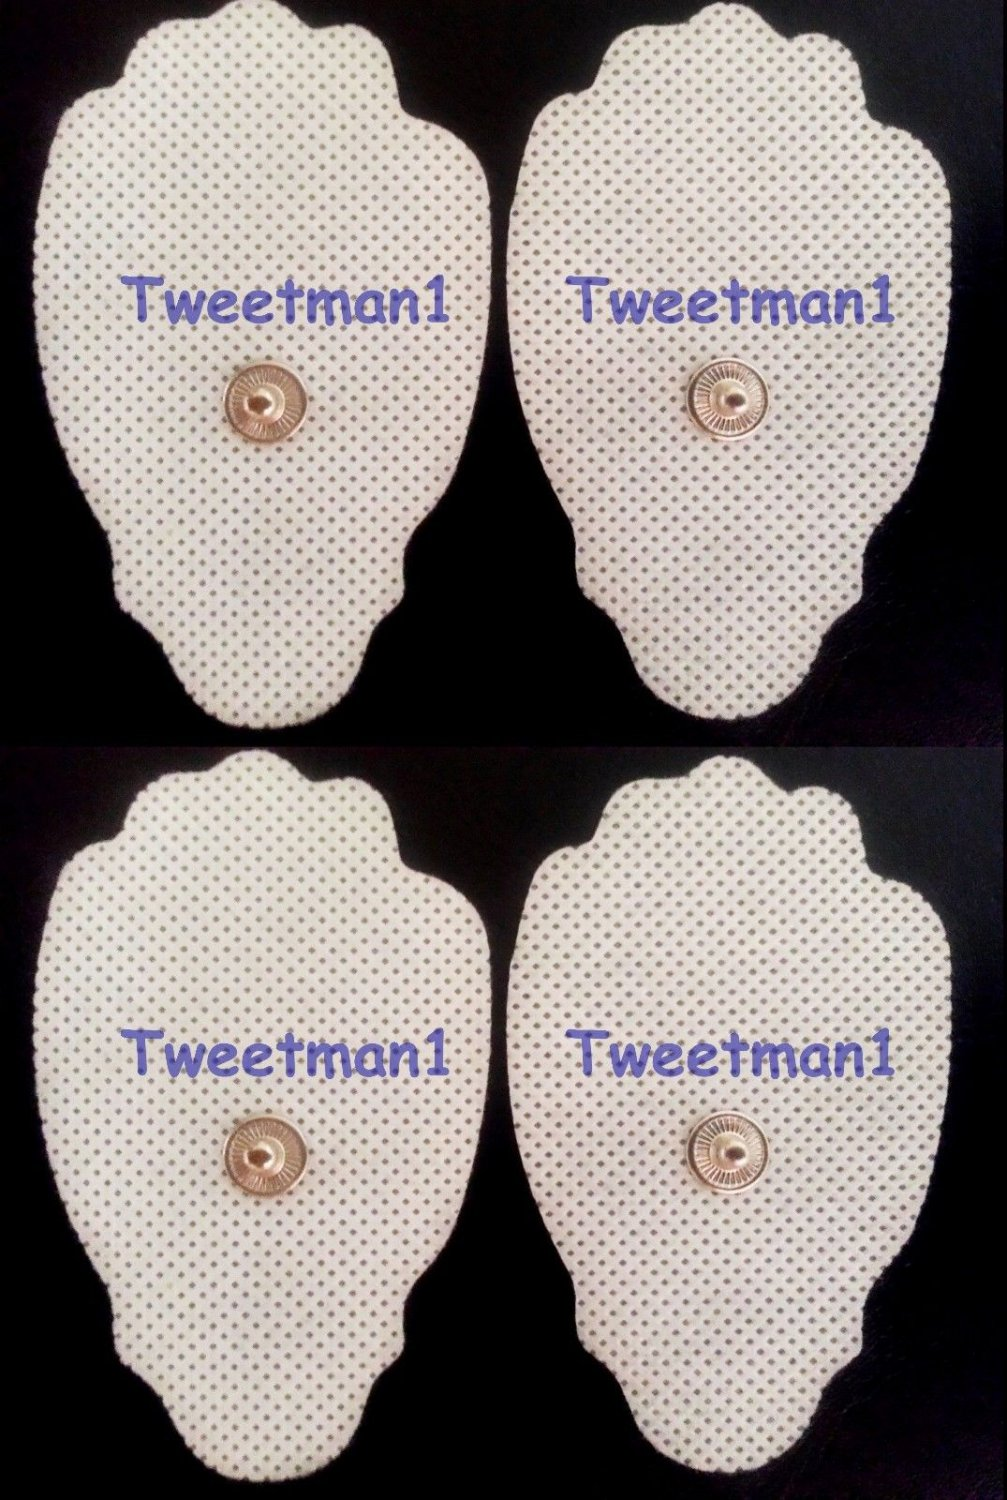 Replacement Electrode Massage Pads (4) for T.E.N.S. Digital Pain Relief Device